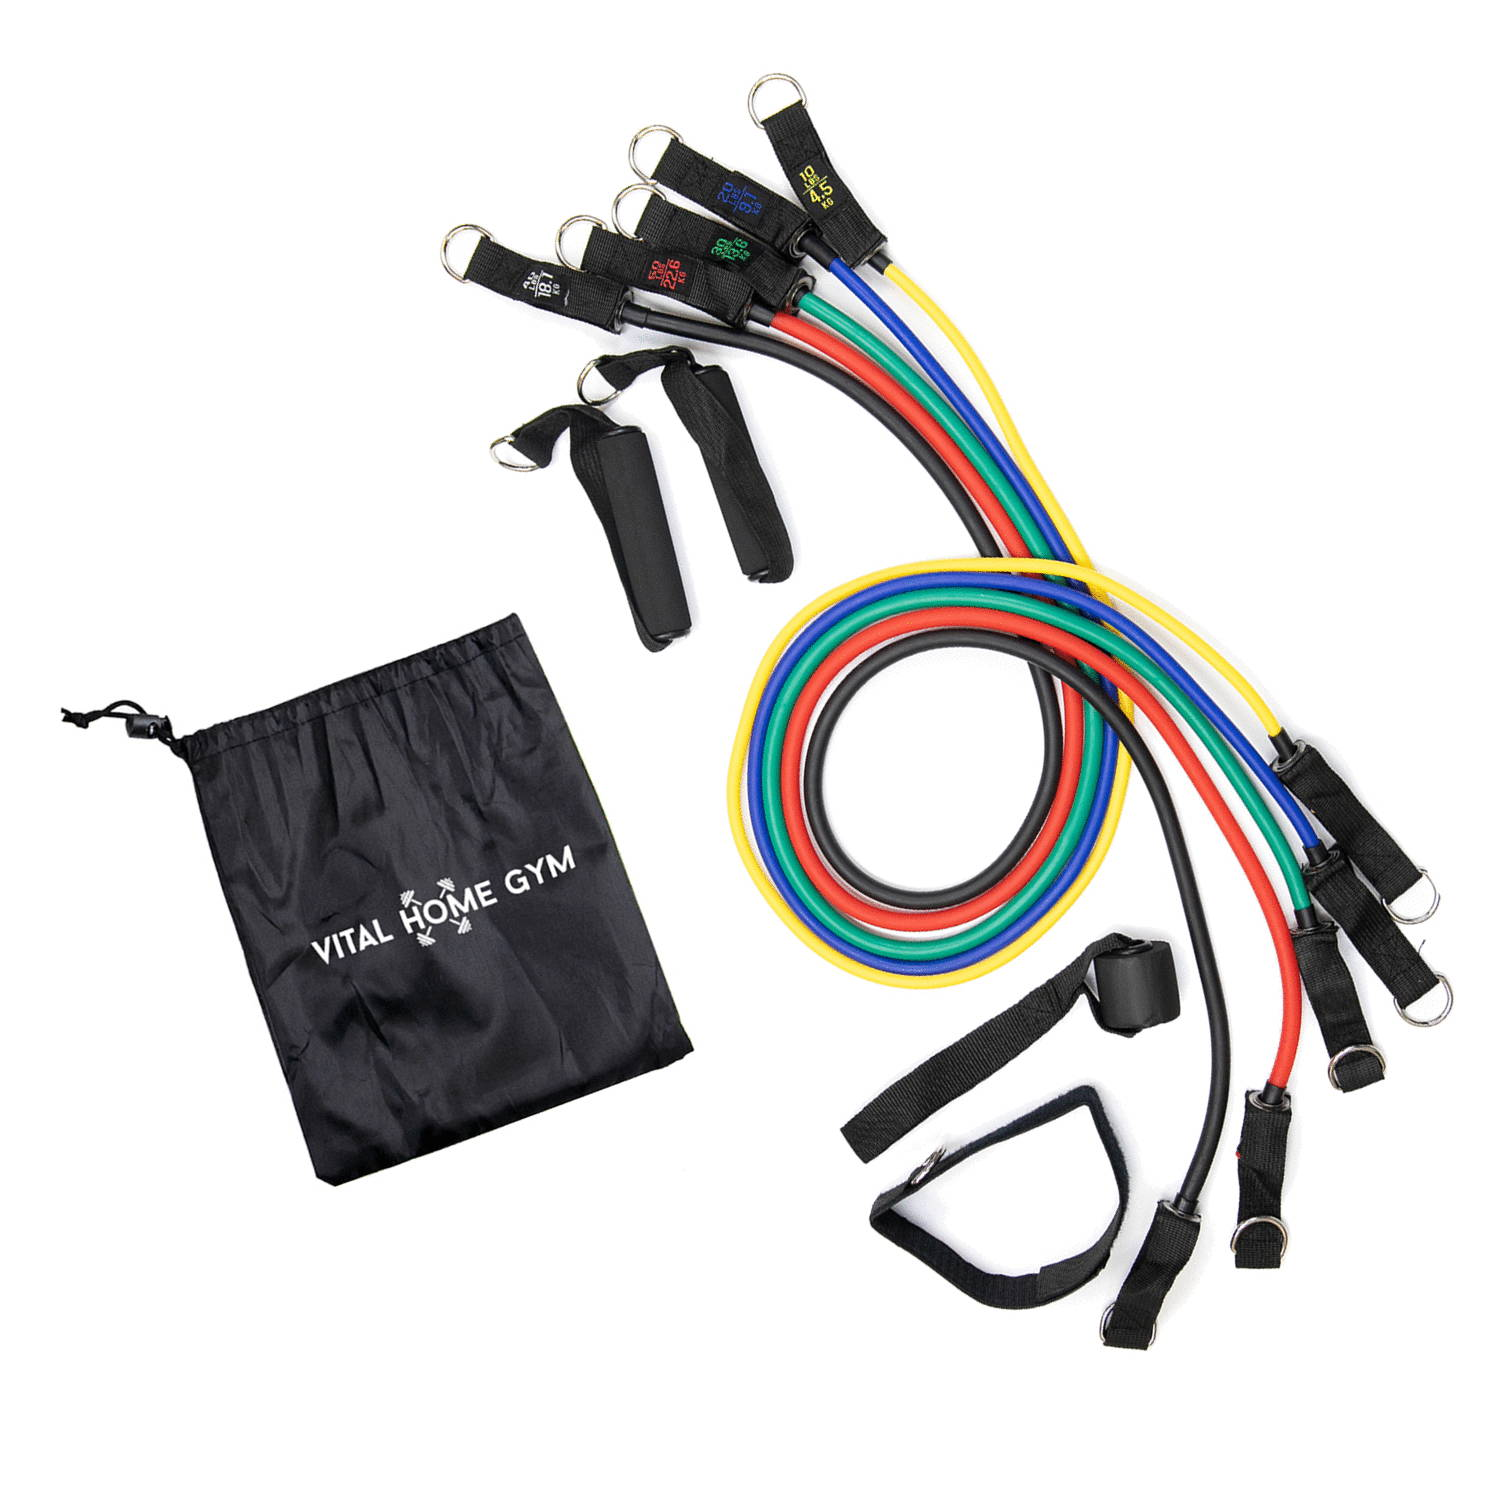 home fitness equipment, exercise bands, workout bands